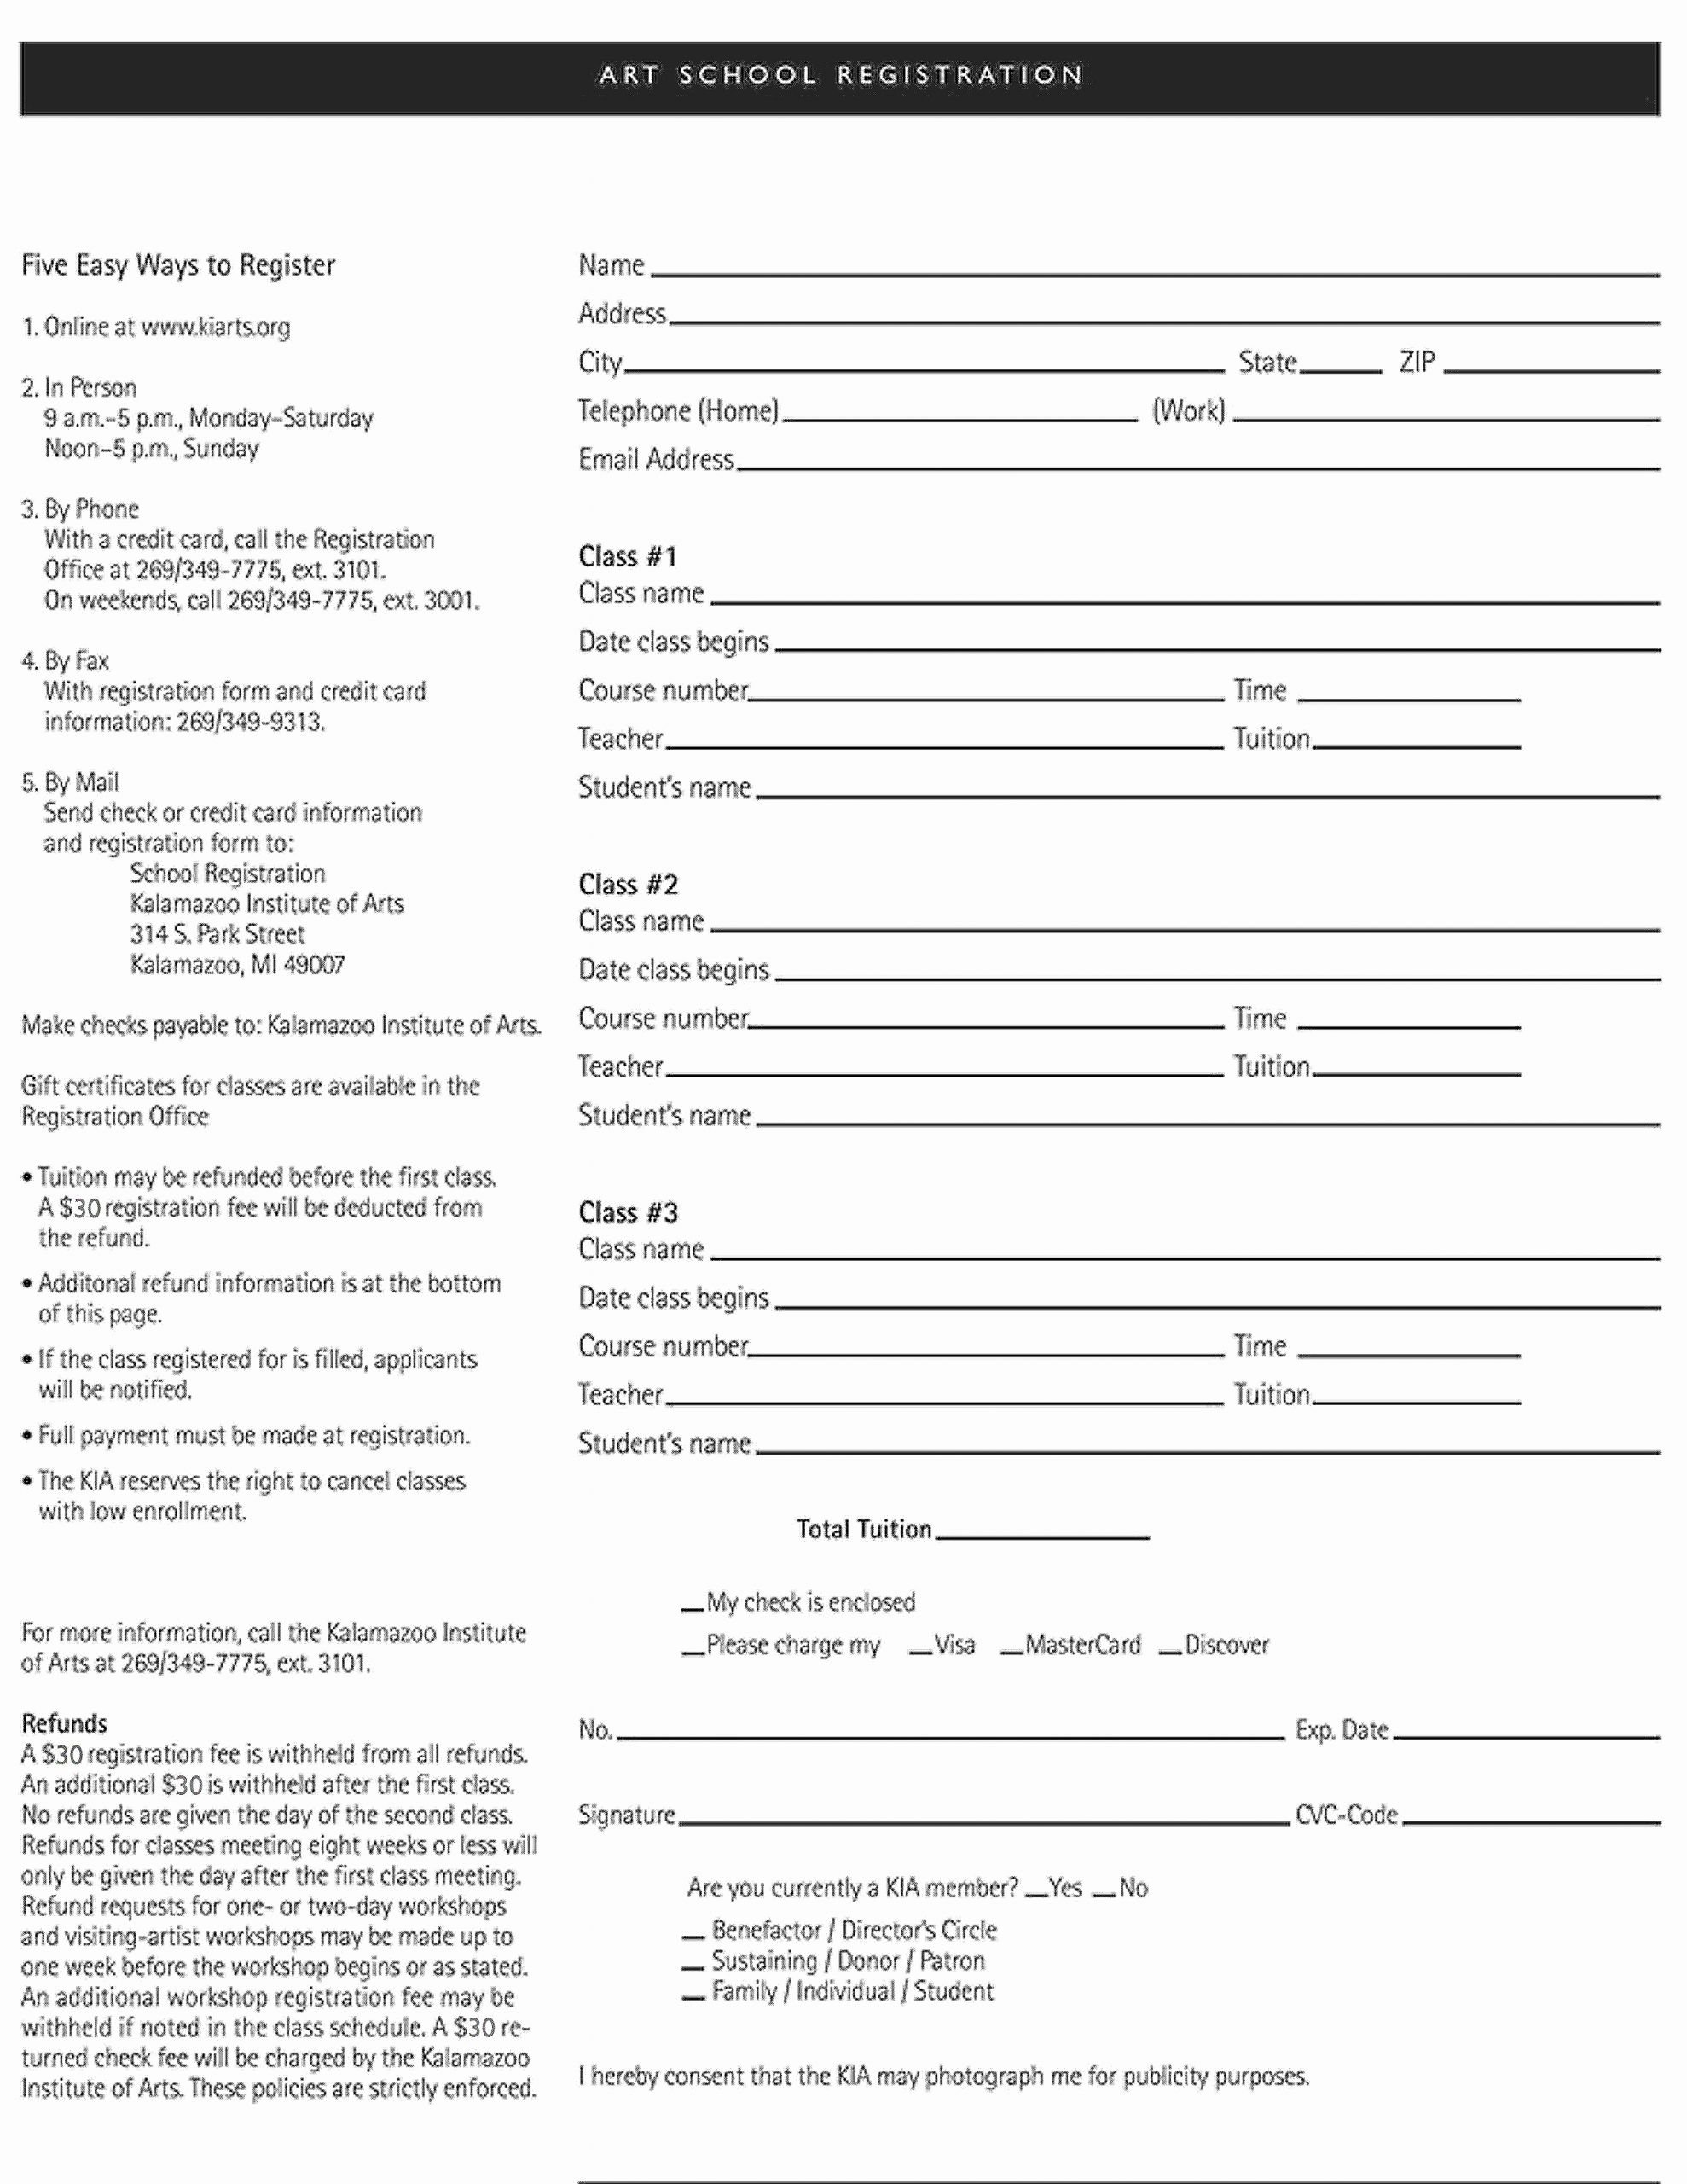 School Registration forms Template Inspirational Art School Registration